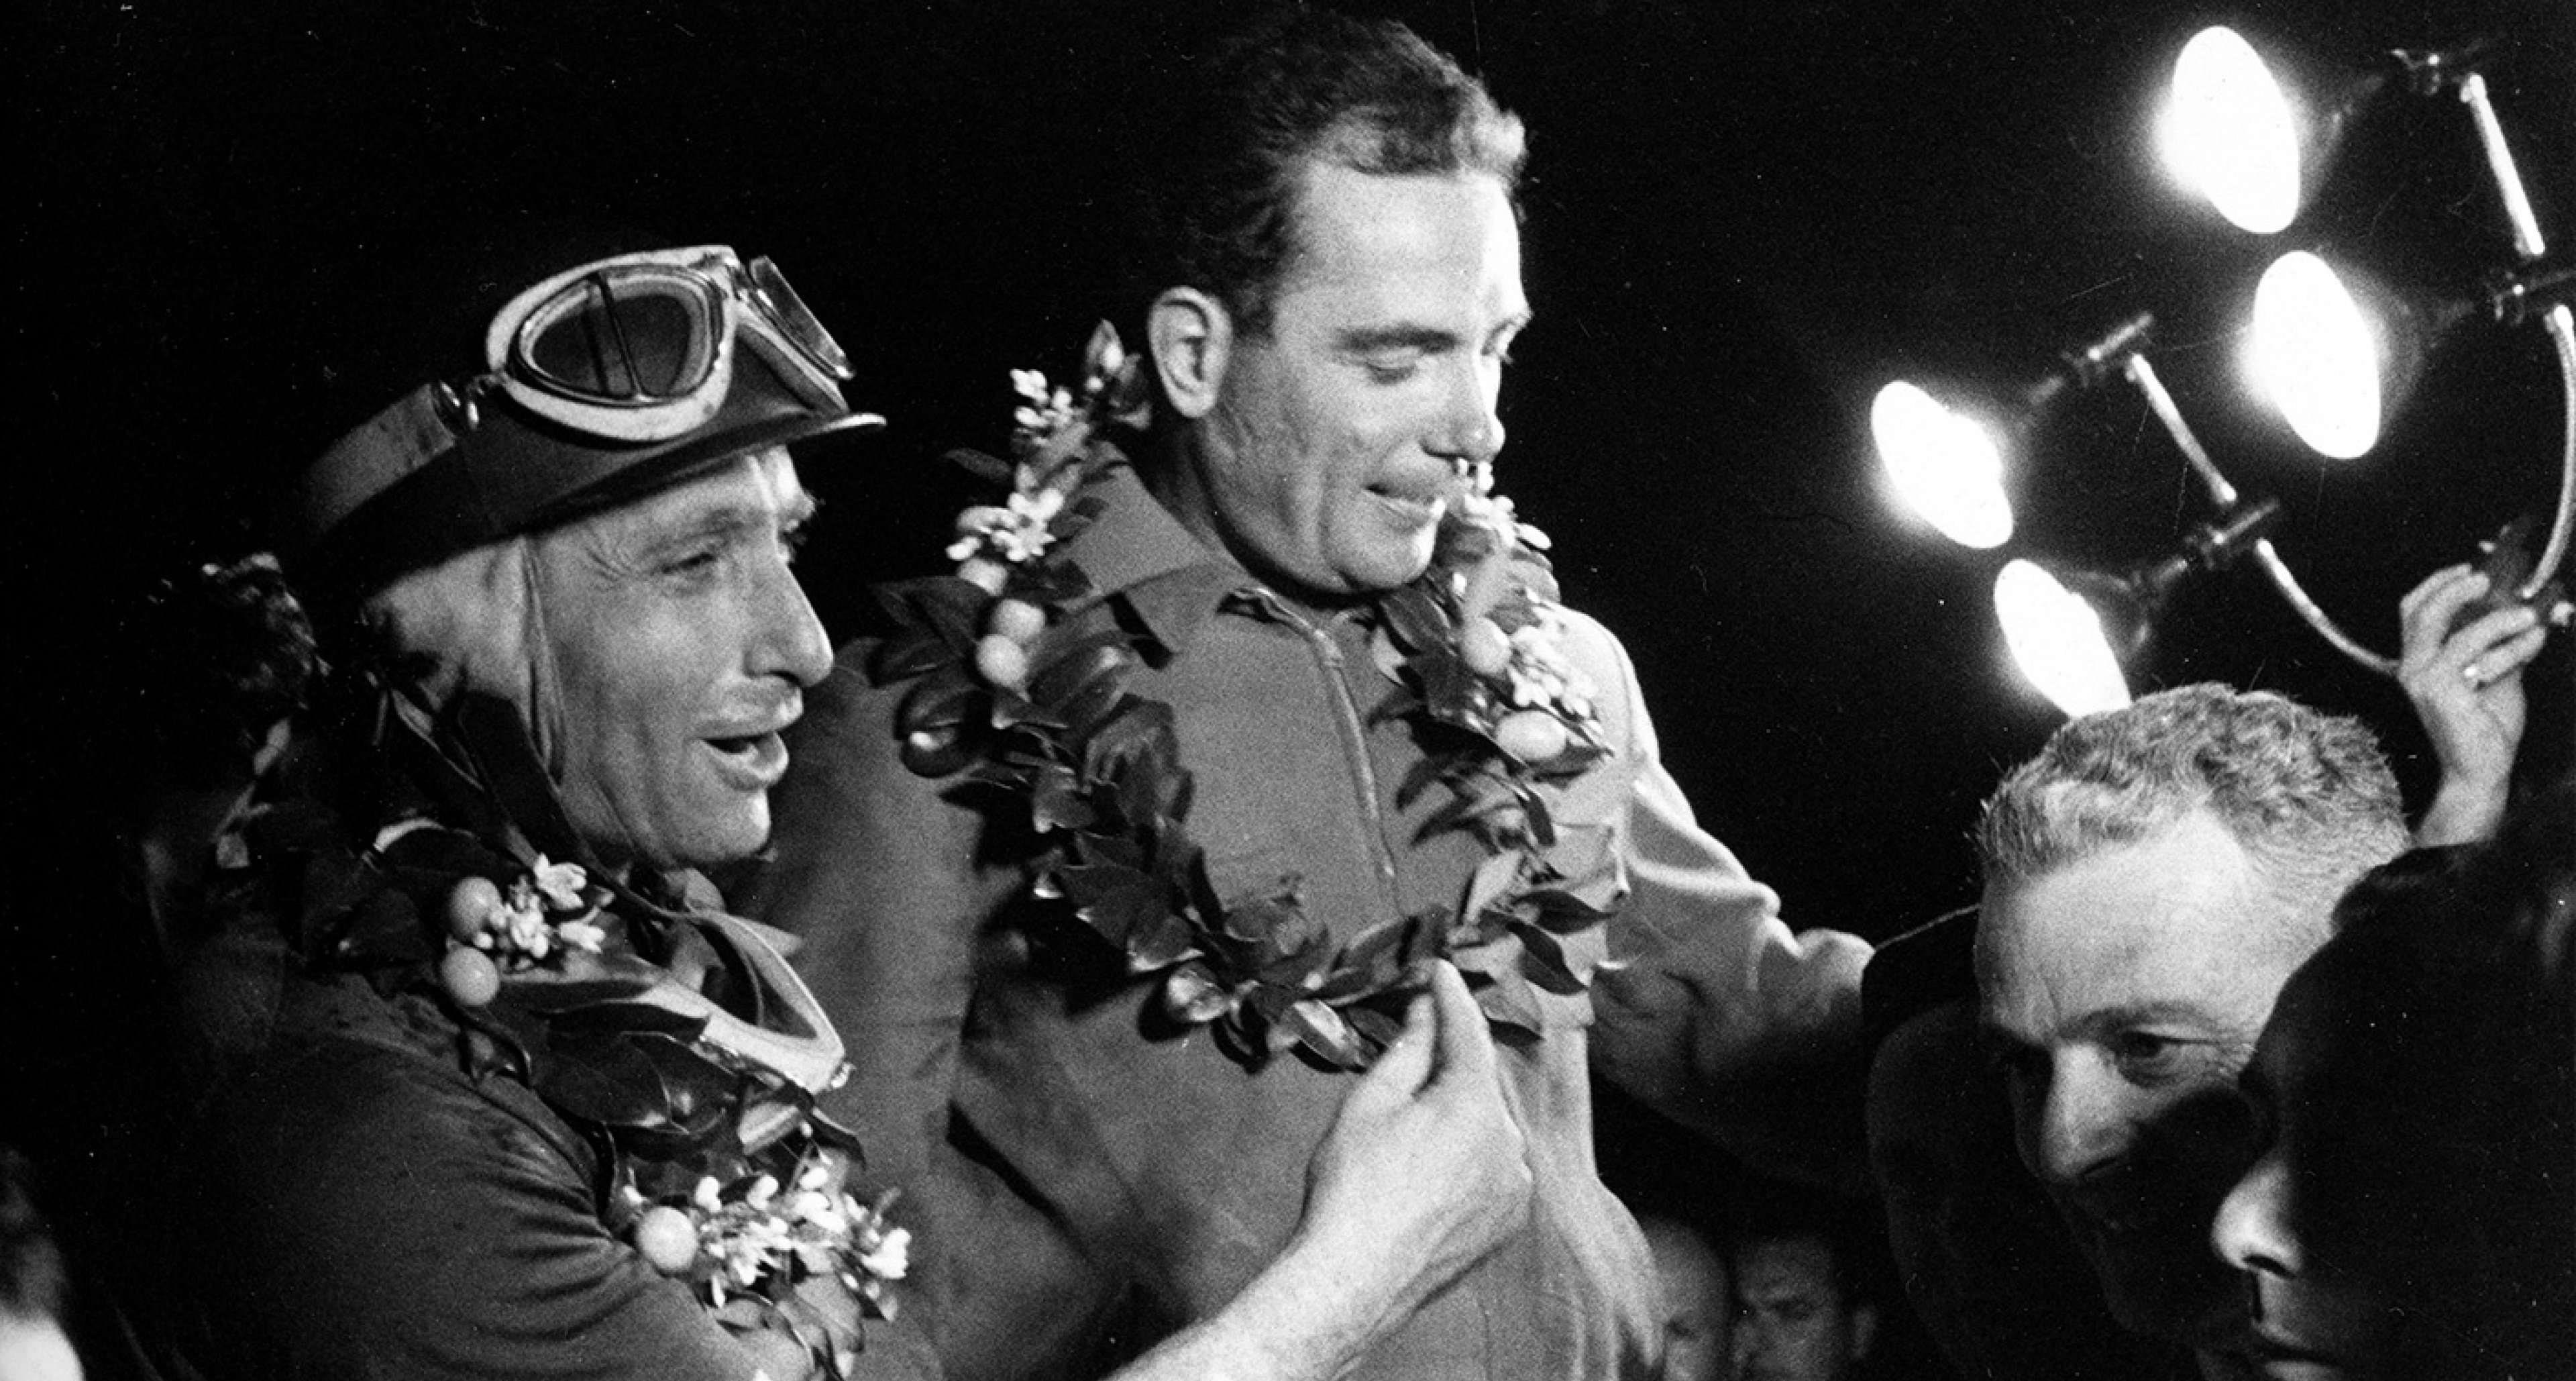 Juan Manuel Fangio and Jean Behra at the 1957 12 Hours of Sebring